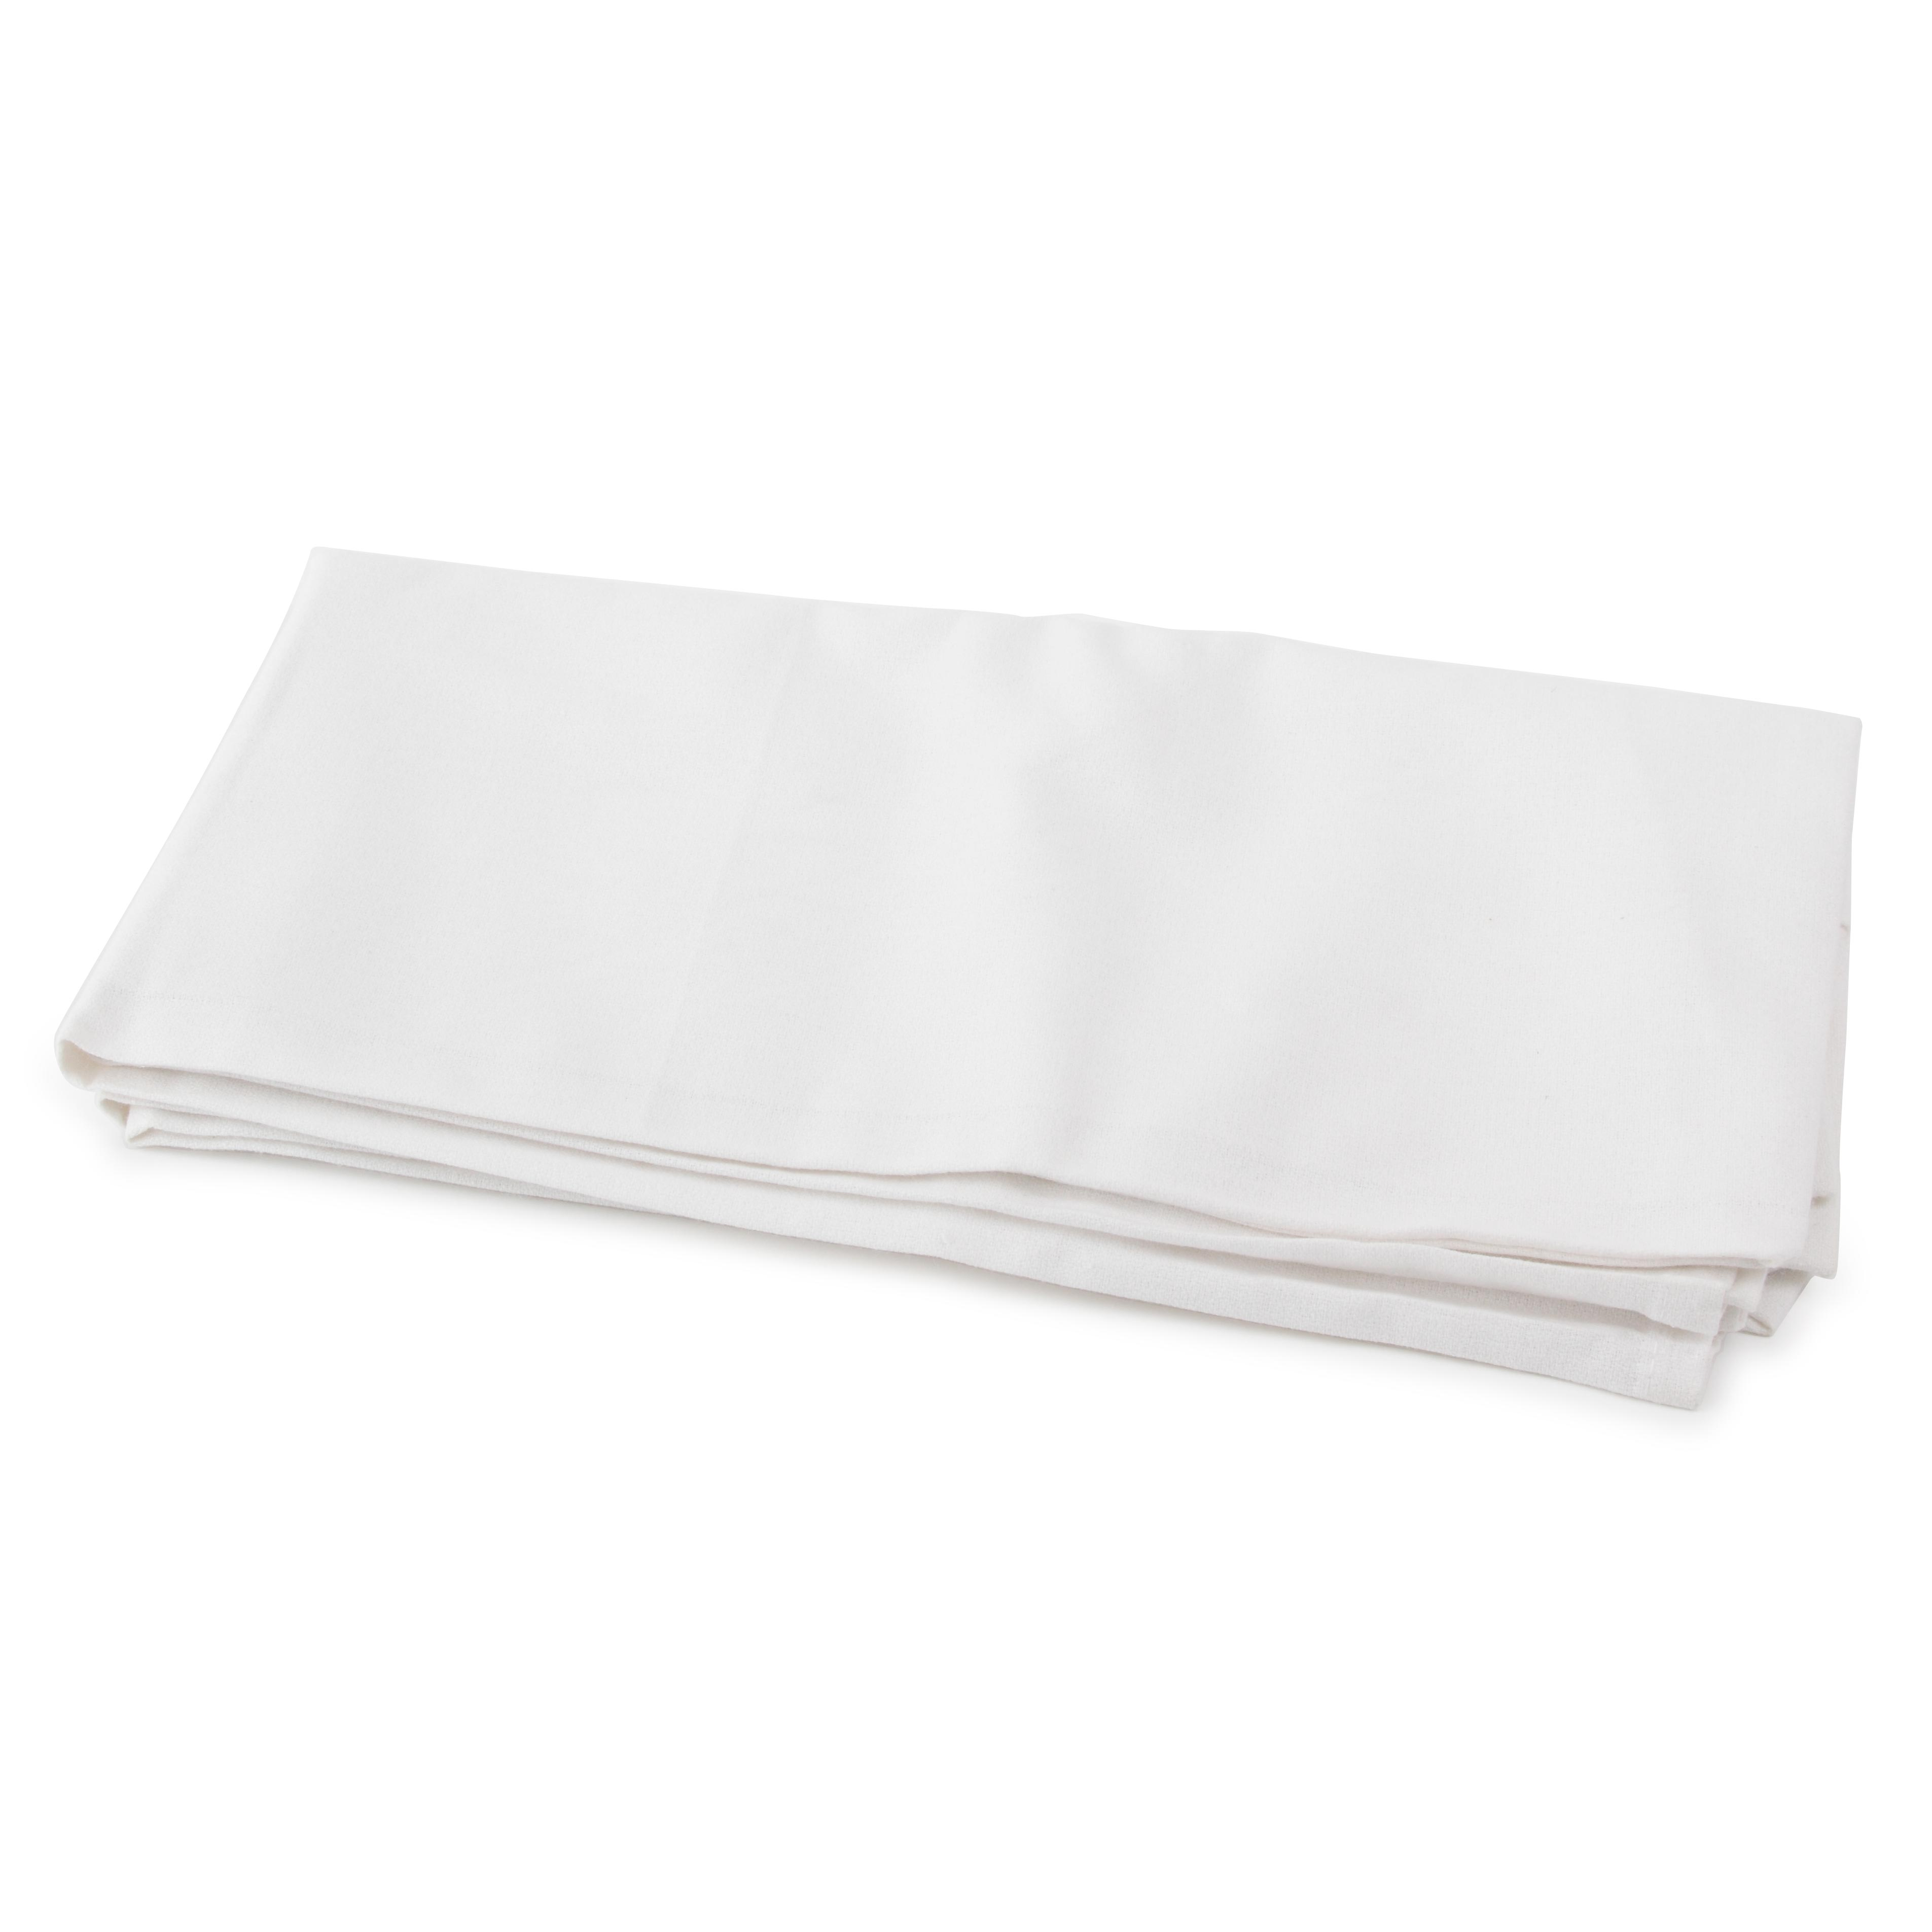 Royal Industries R 1202 table cloth, linen